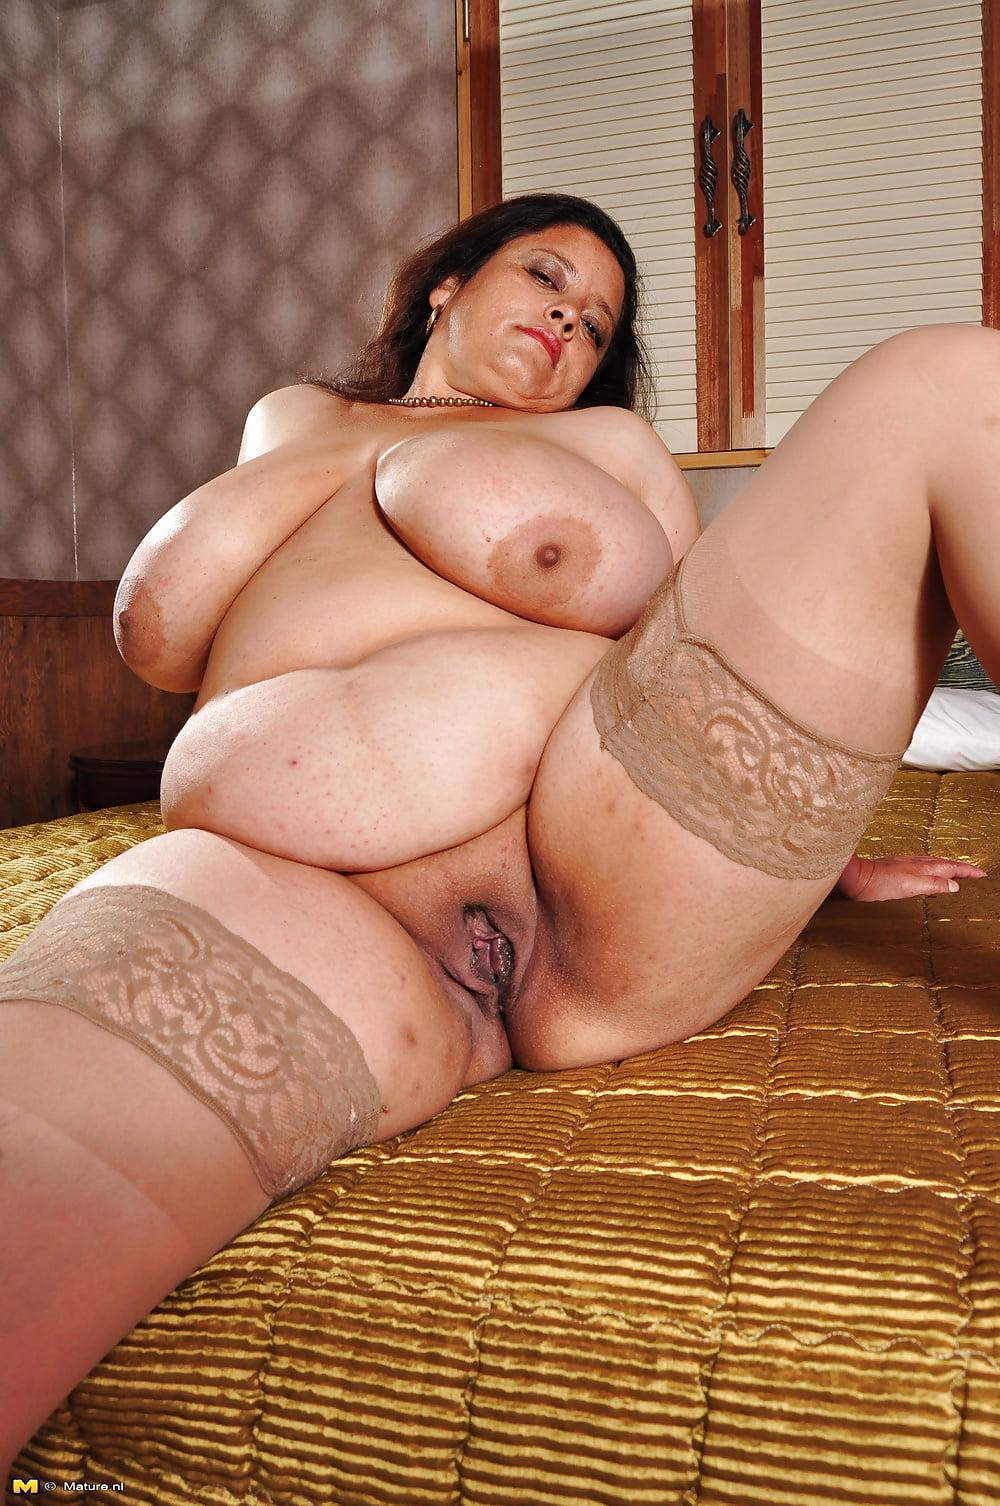 Anal mature bbw free pics only african